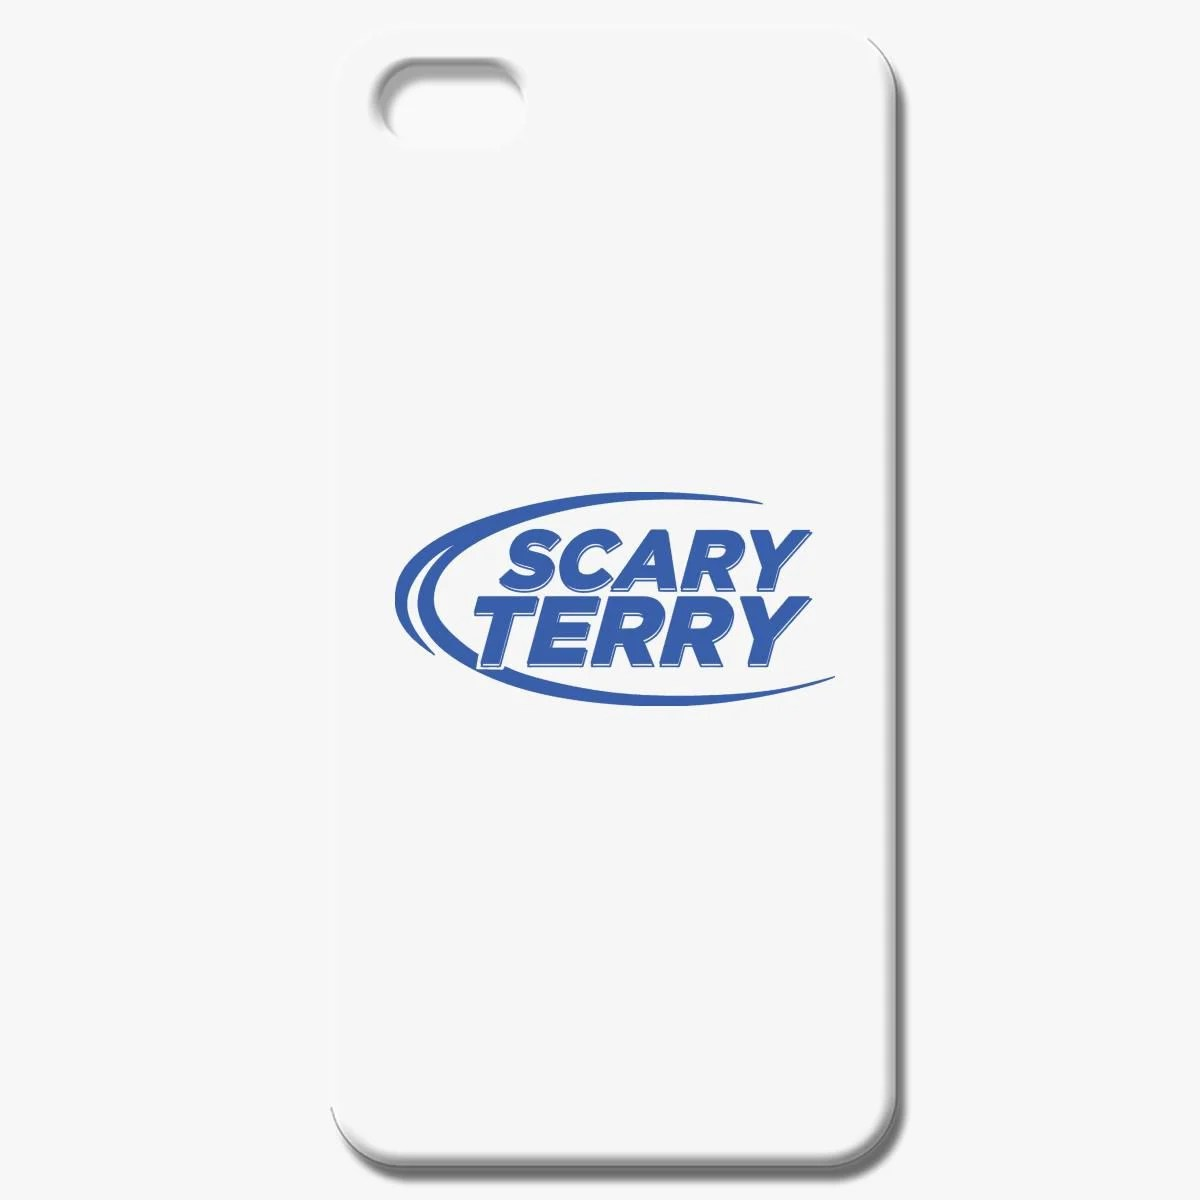 Scary Terry Iphone 7 Case